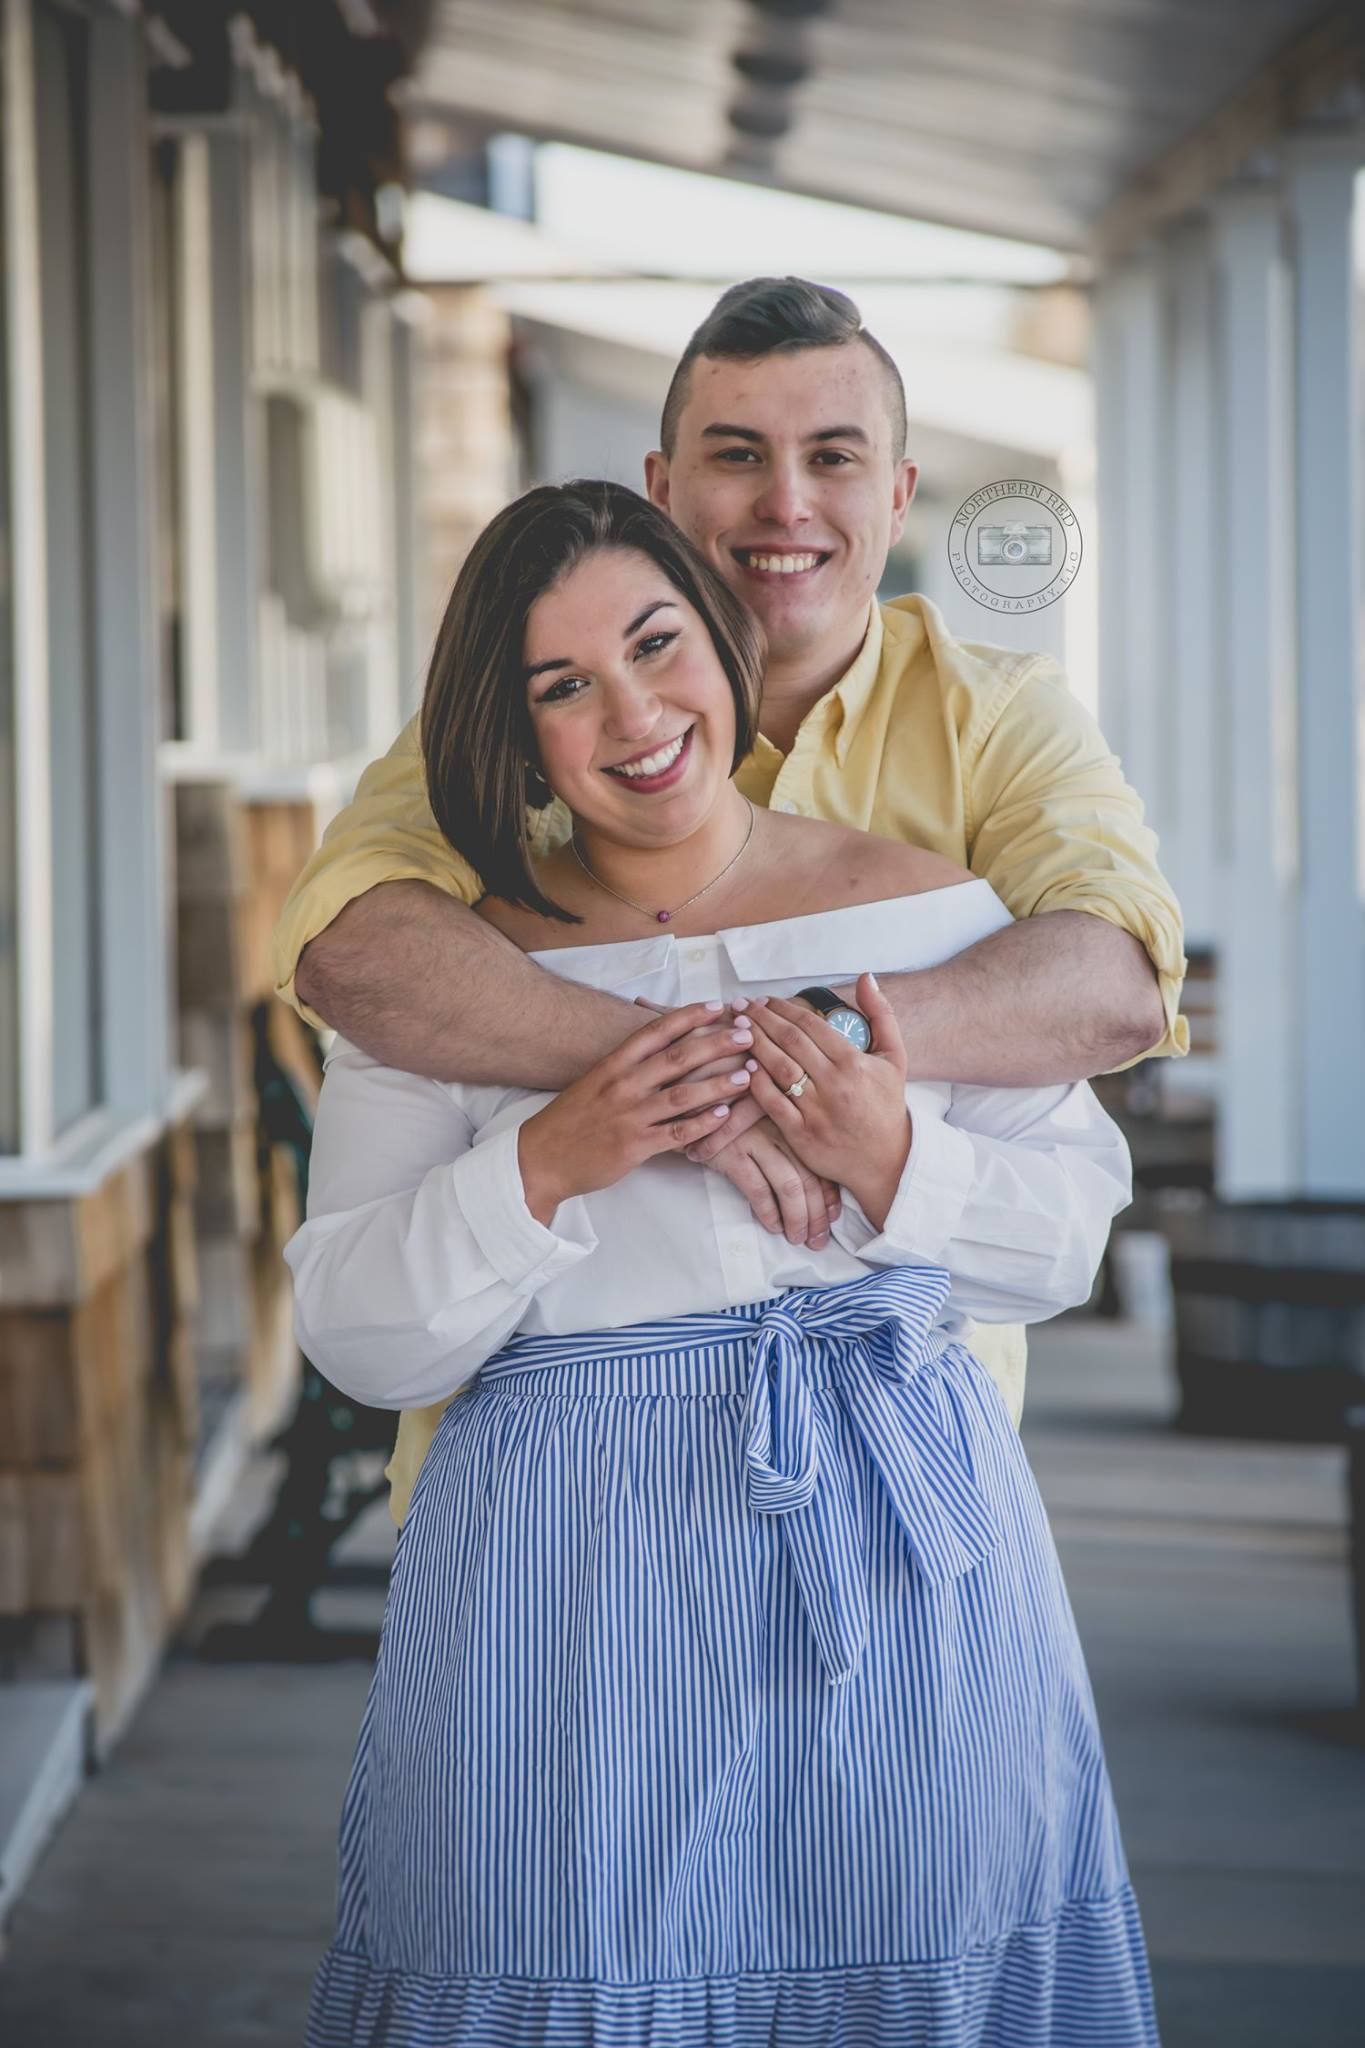 South Carolina Engagement | Northern Red Photography